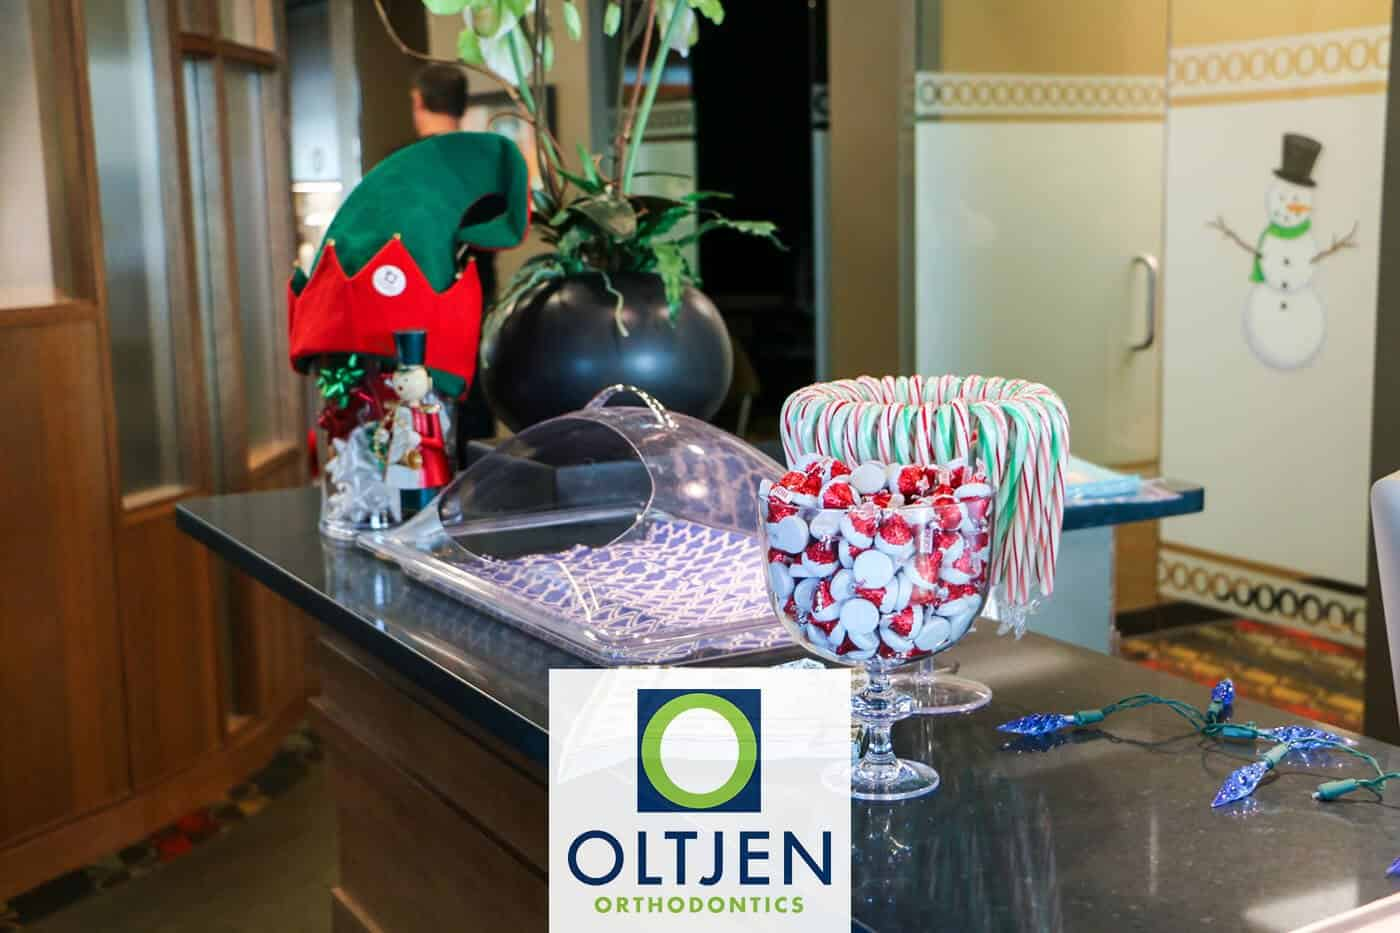 Oltjen-Orthodontics-Christmas-in-July-2-of-10